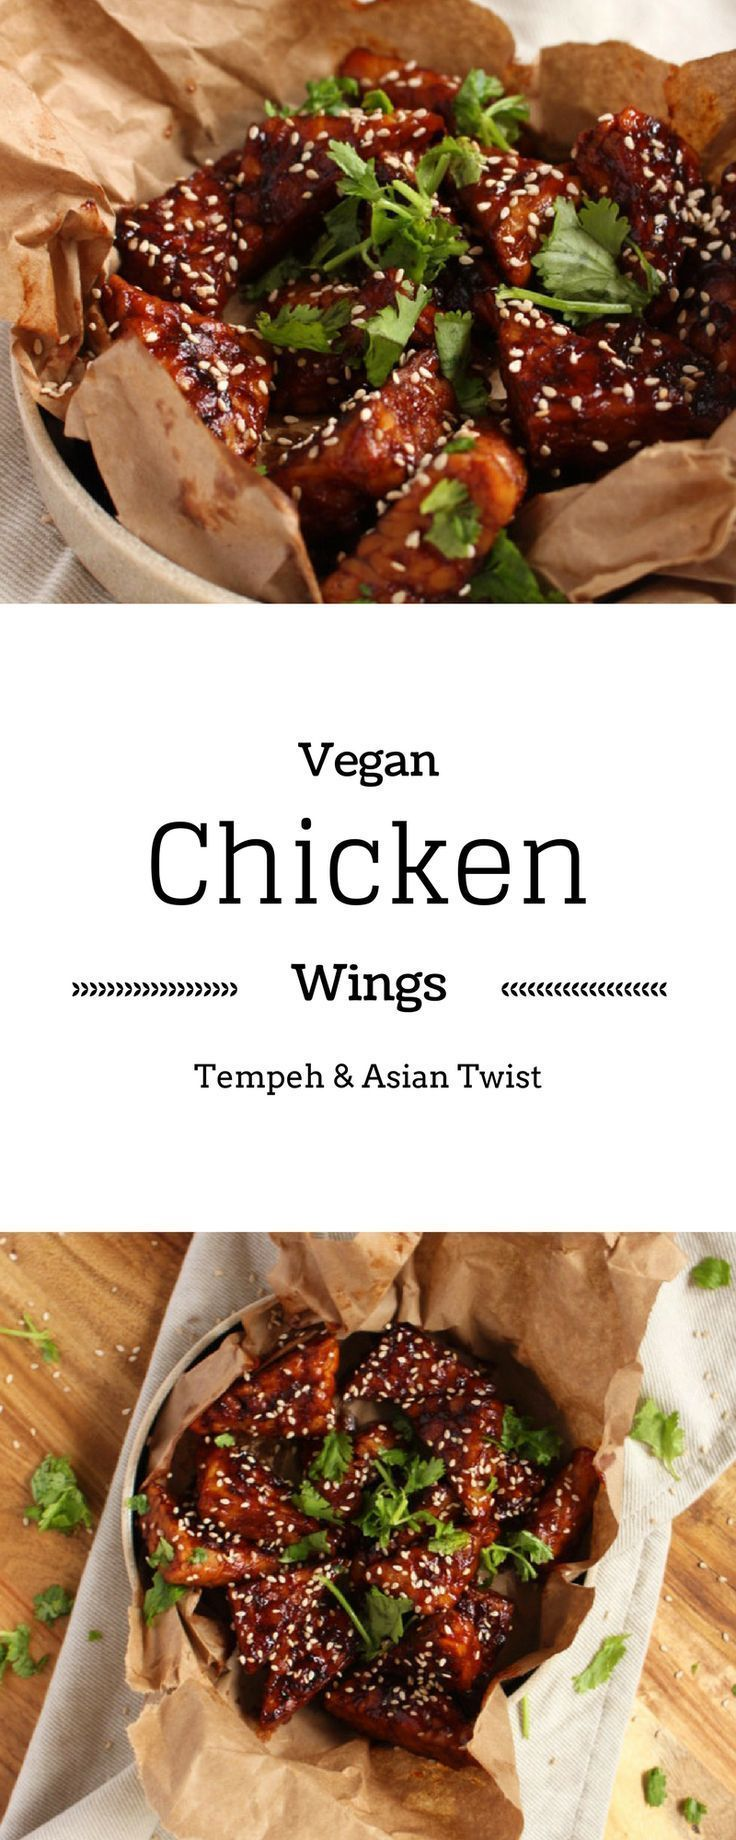 Vegan Chicken Wings - Don't feel left out this Super Bowl, I got you covered with this vegan recipe for chicken wings. All made with Tempeh and an awesome asian twist - http://BrokeFoodies.com